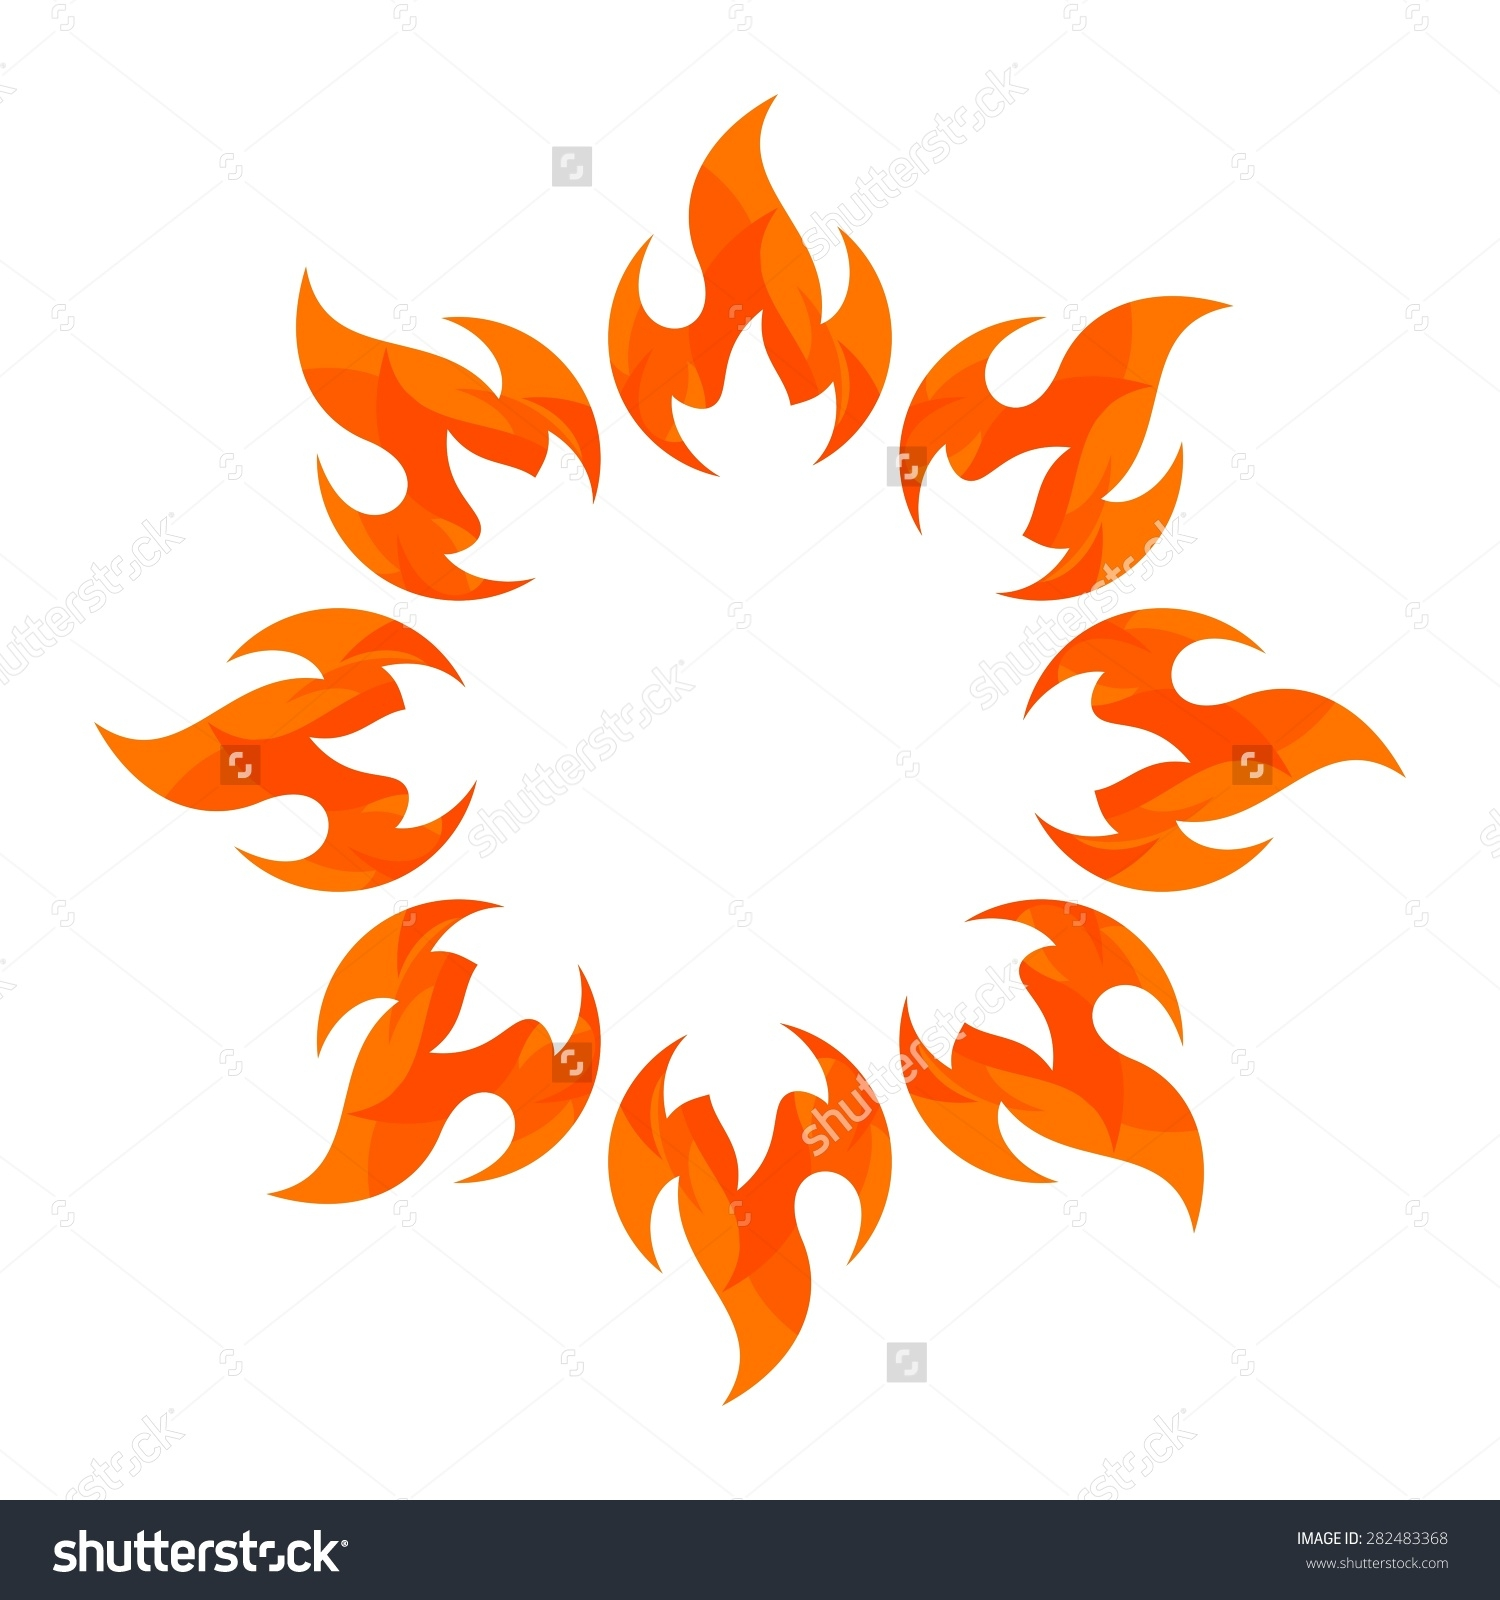 Flaming sun clipart picture royalty free library Flaming Sun Clipart - clipartsgram.com picture royalty free library